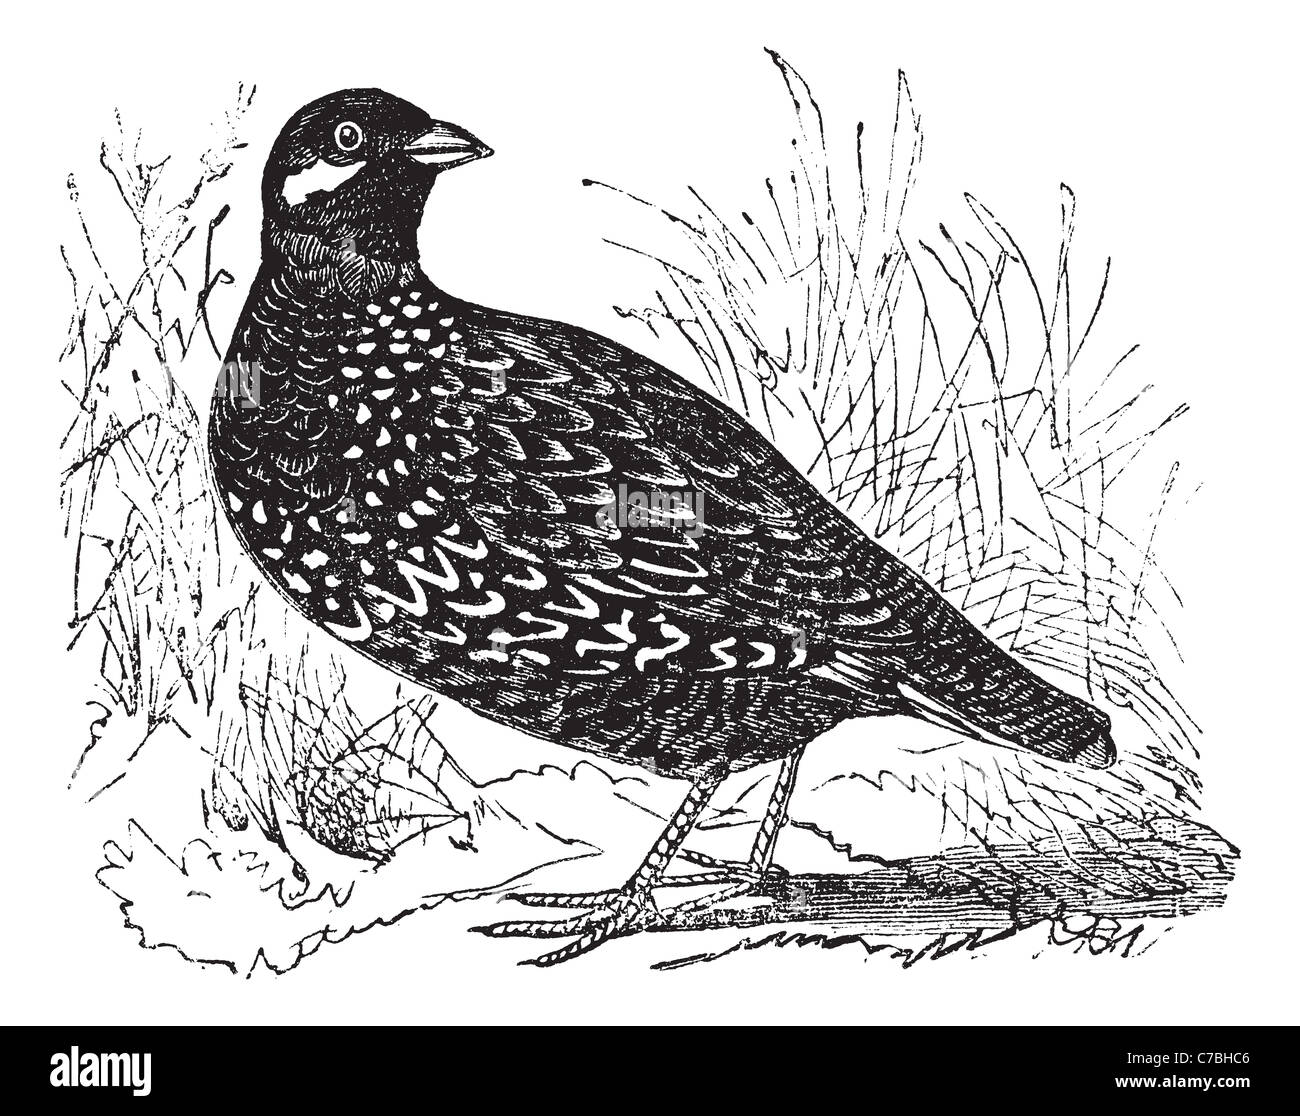 Black Francolin also known as Francolinus francolinus, gamebird, vintage engraved illustration of Black Francolin. - Stock Image